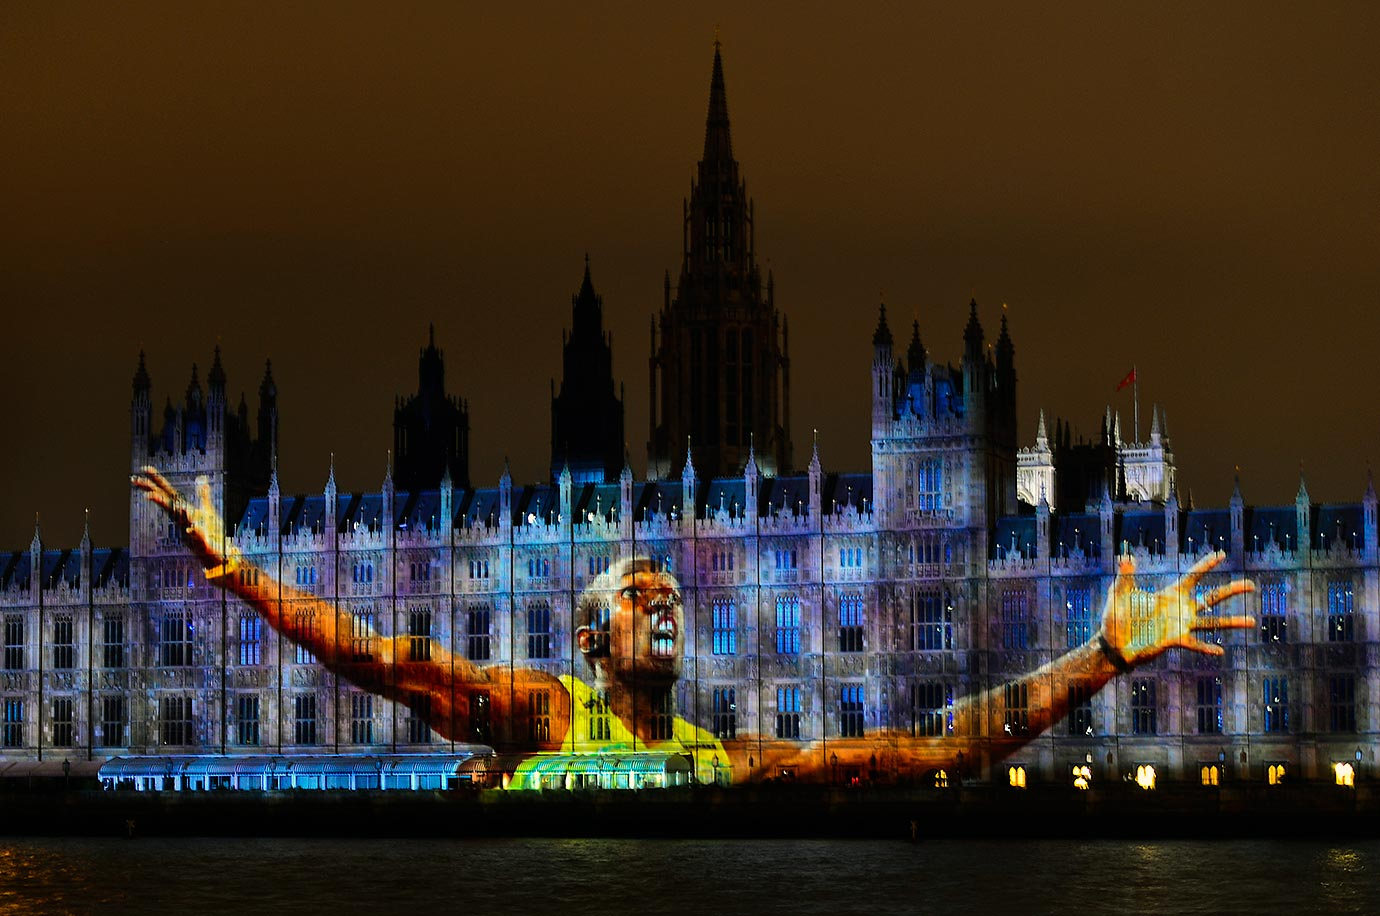 An image of Usain Bolt is projected on The Houses of Parliament in London during the Opening Ceremony of the 2012 Olympic Games.